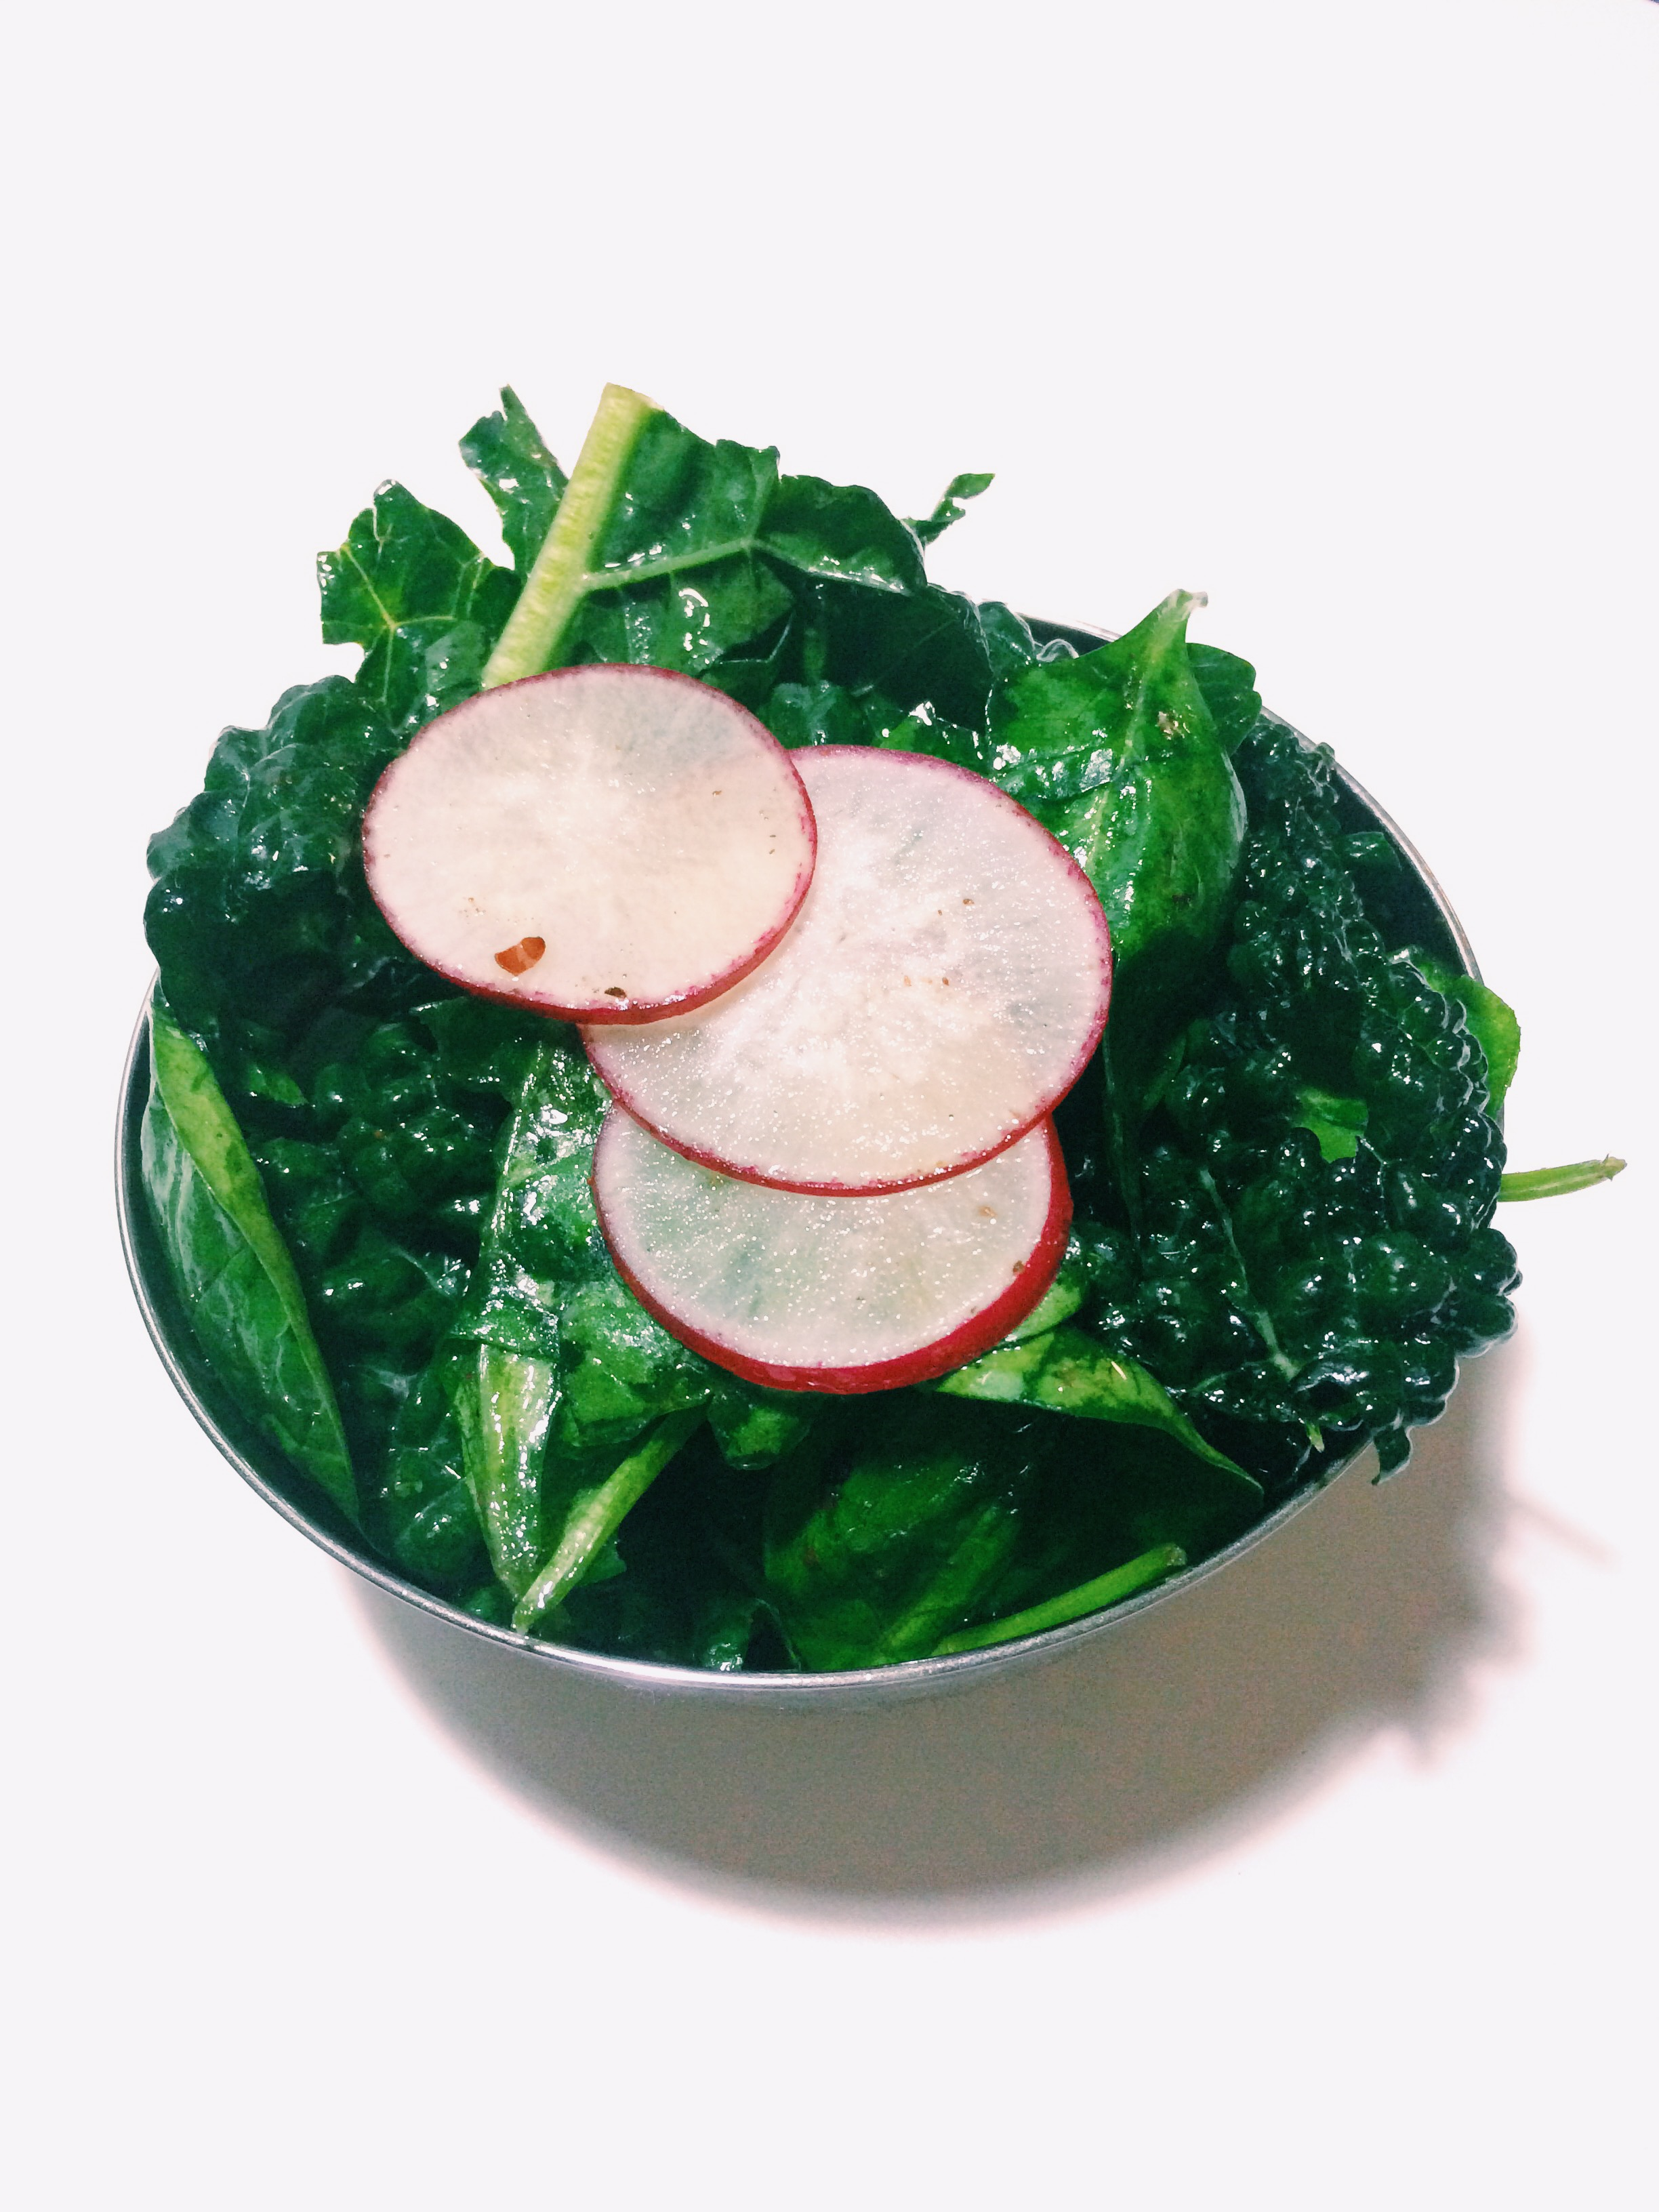 KALE SPINACH AND RADISH SALAD